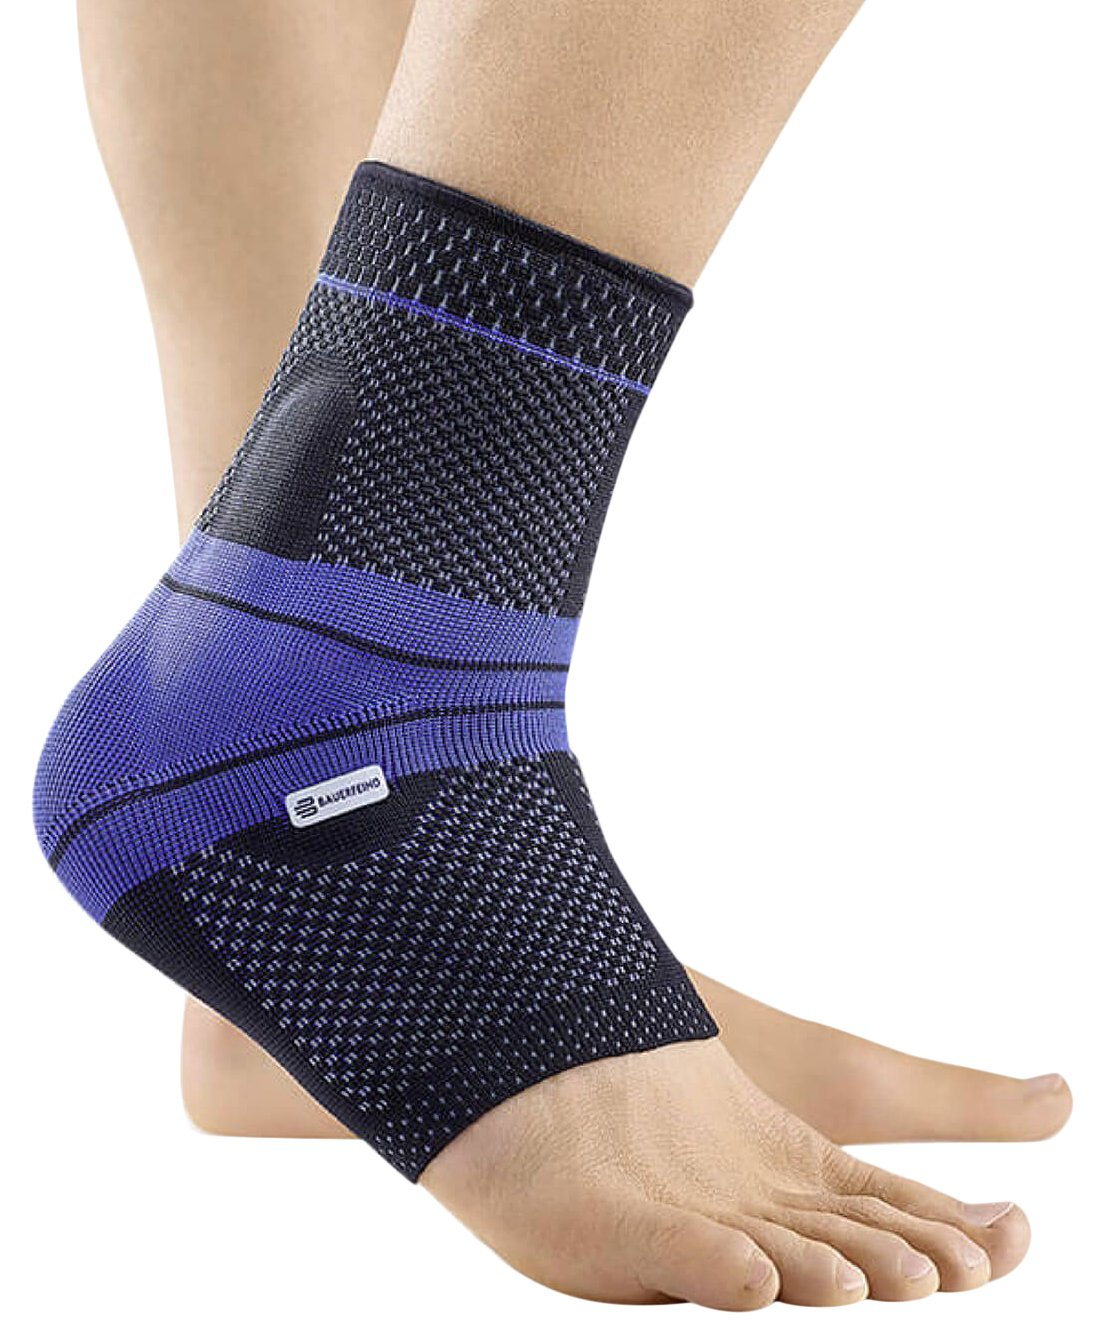 Bauerfeind MalleoTrain Right Ankle Support (Black, 2)